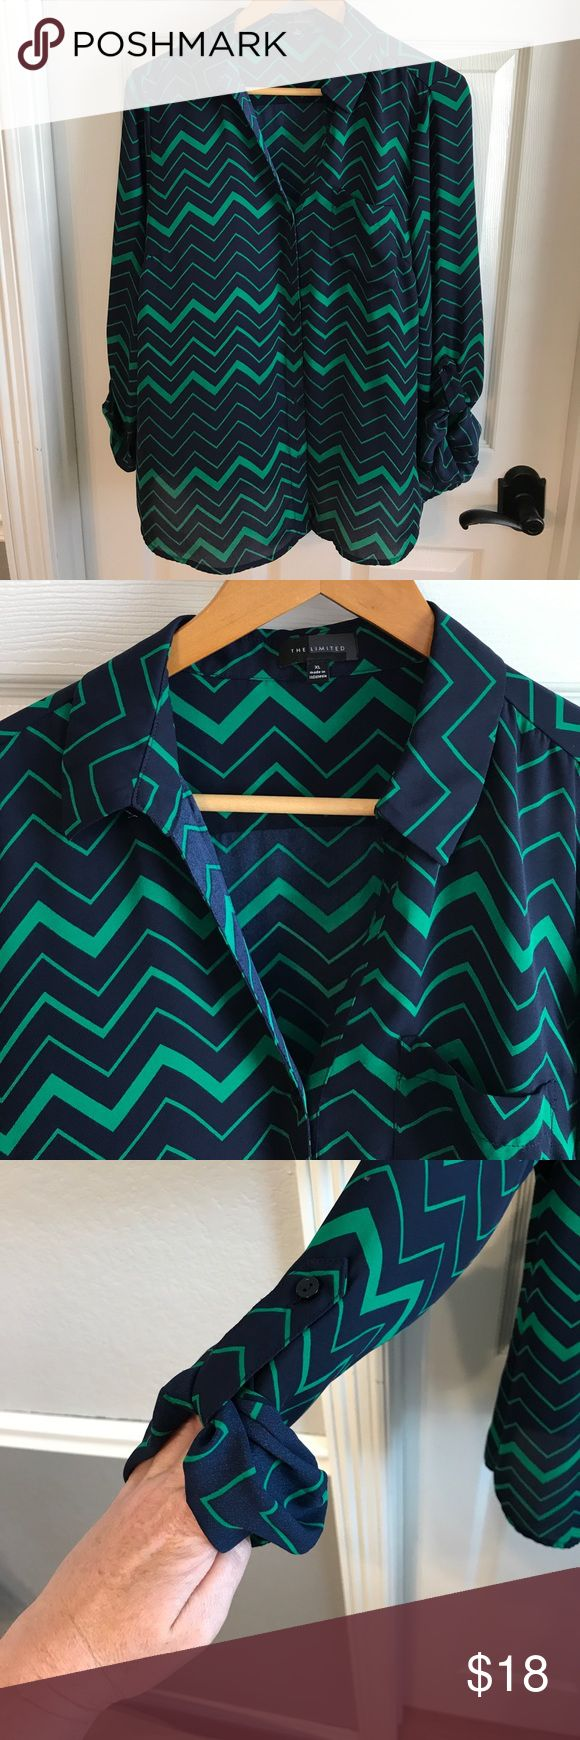 Gorgeous chevron blouse Very gently used condition. No imperfections. Sleeves can be worn rolled up or down. Material is 100% polyester. Light and flowy but not sheer. The Limited Tops Blouses